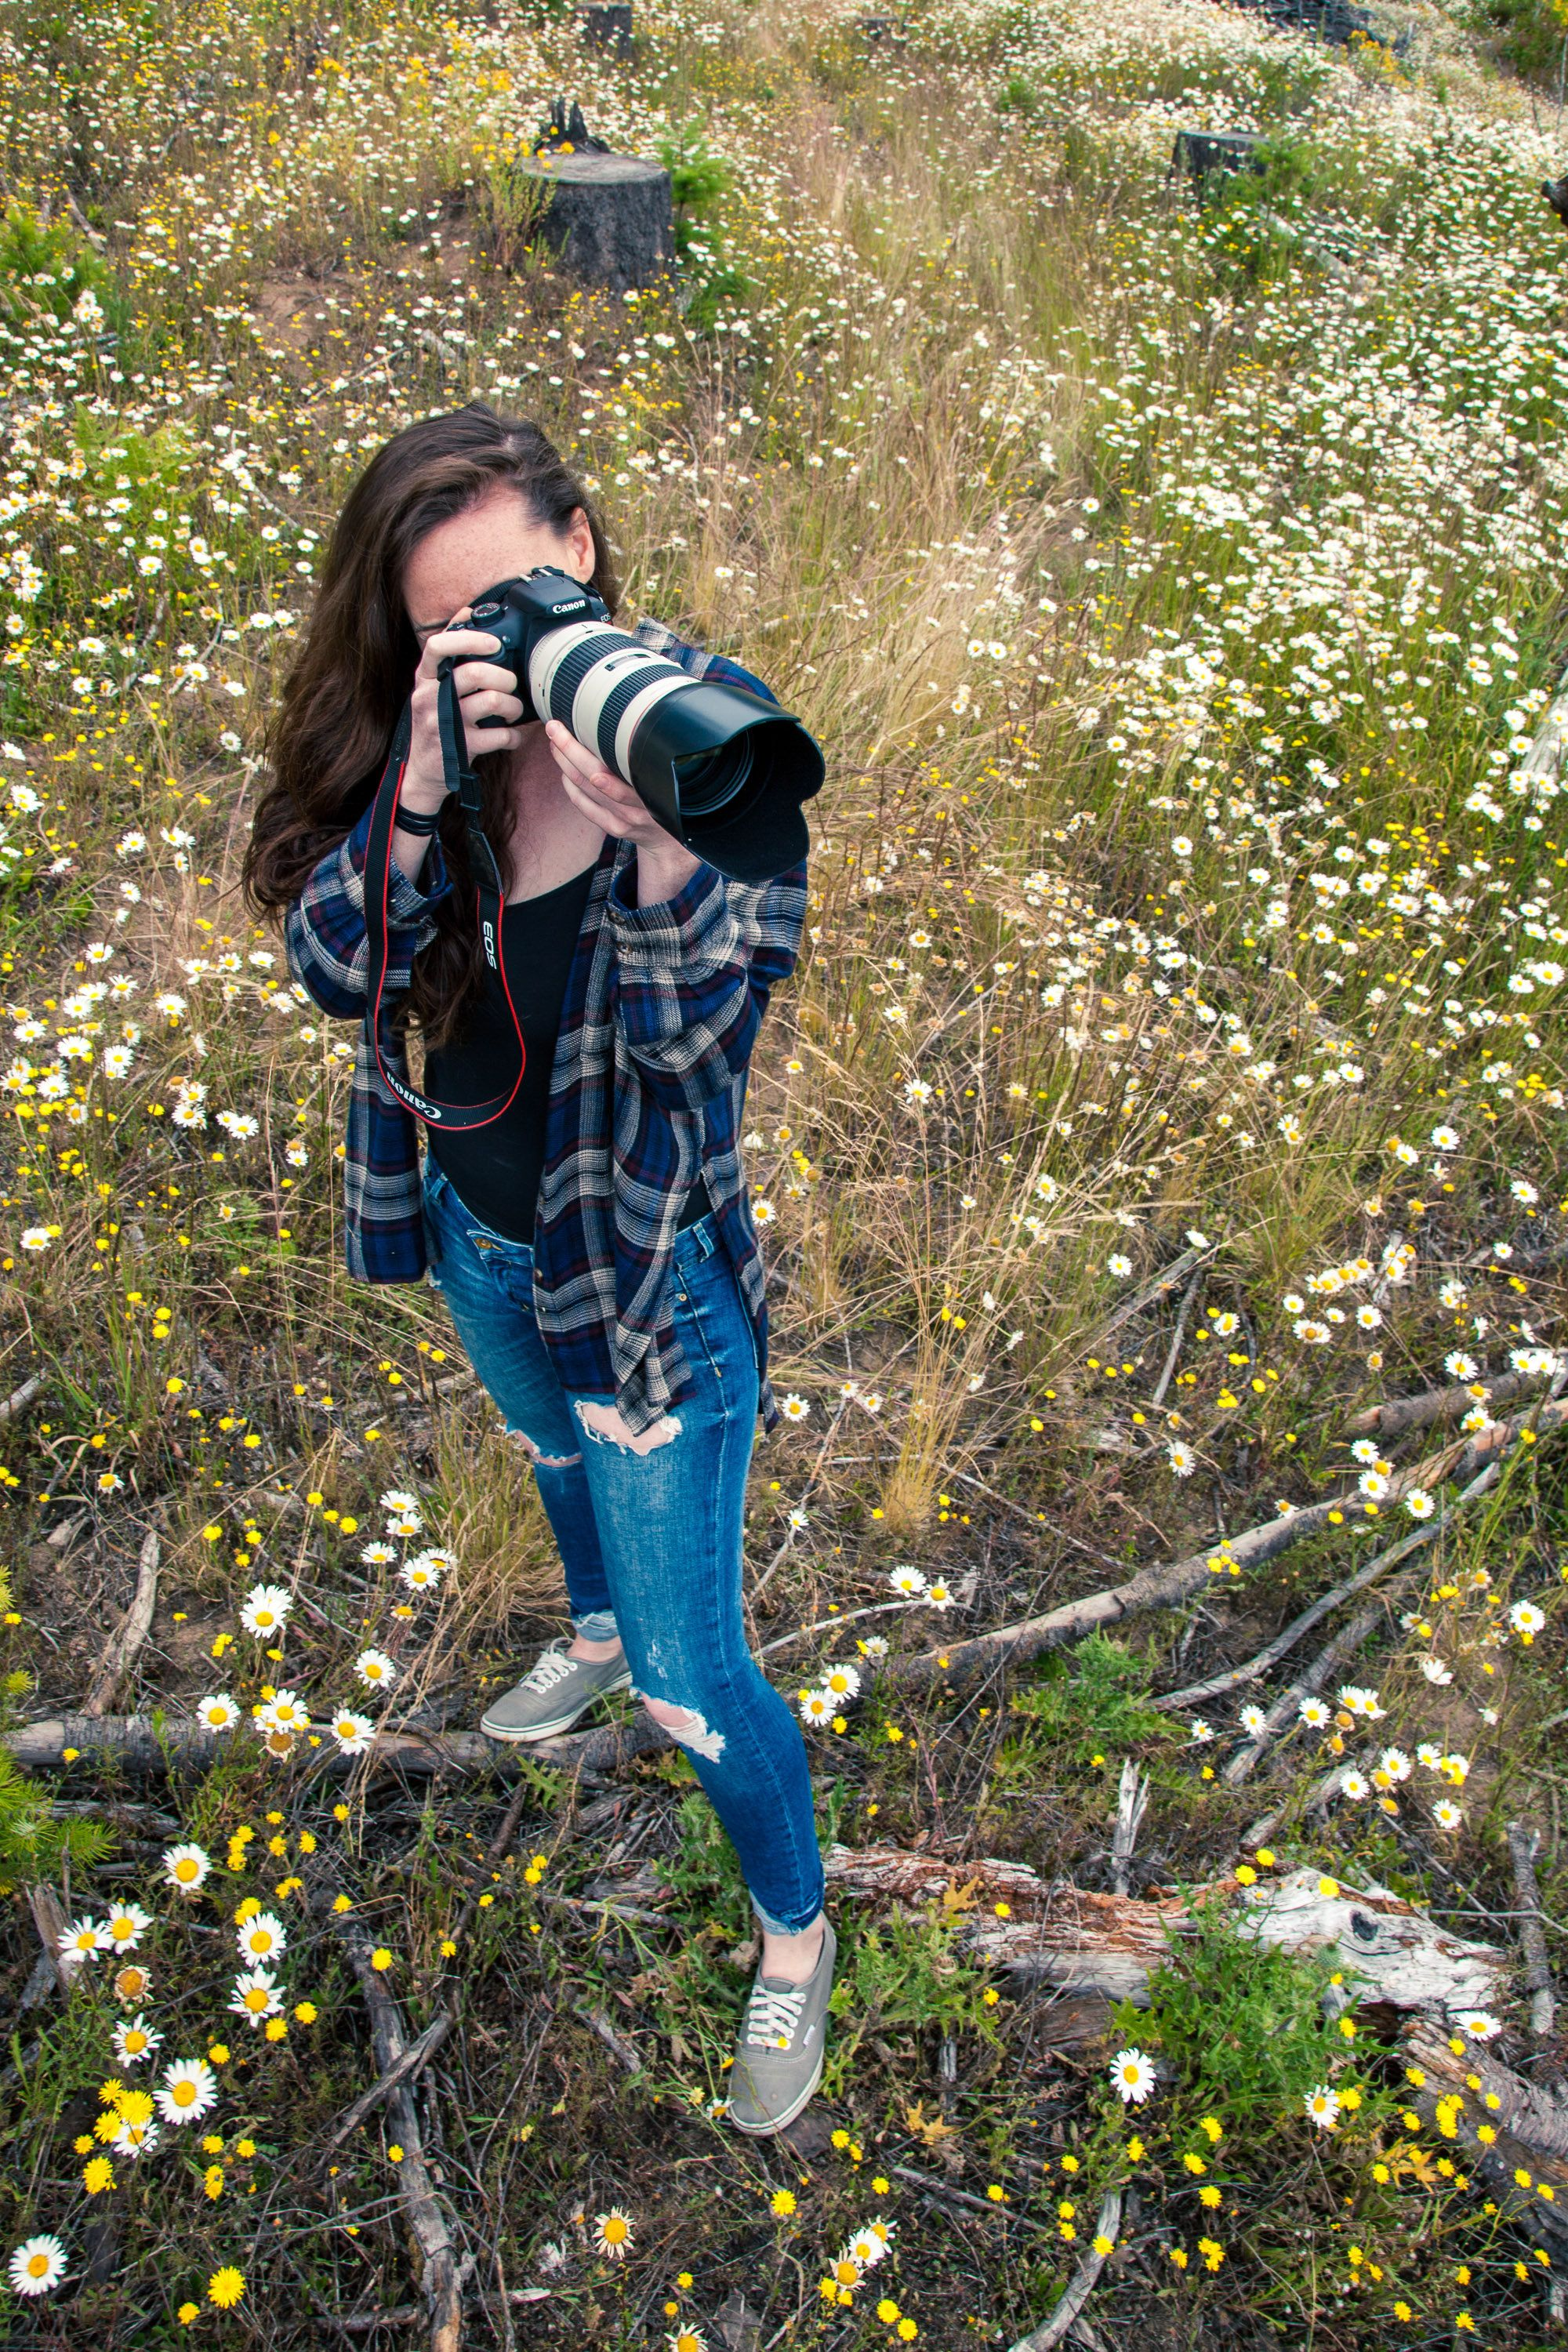 The Creativelive Guide For How To Become A Photographer Beginner Step By Step Photographer Outfit Become A Photographer Photographer Pictures